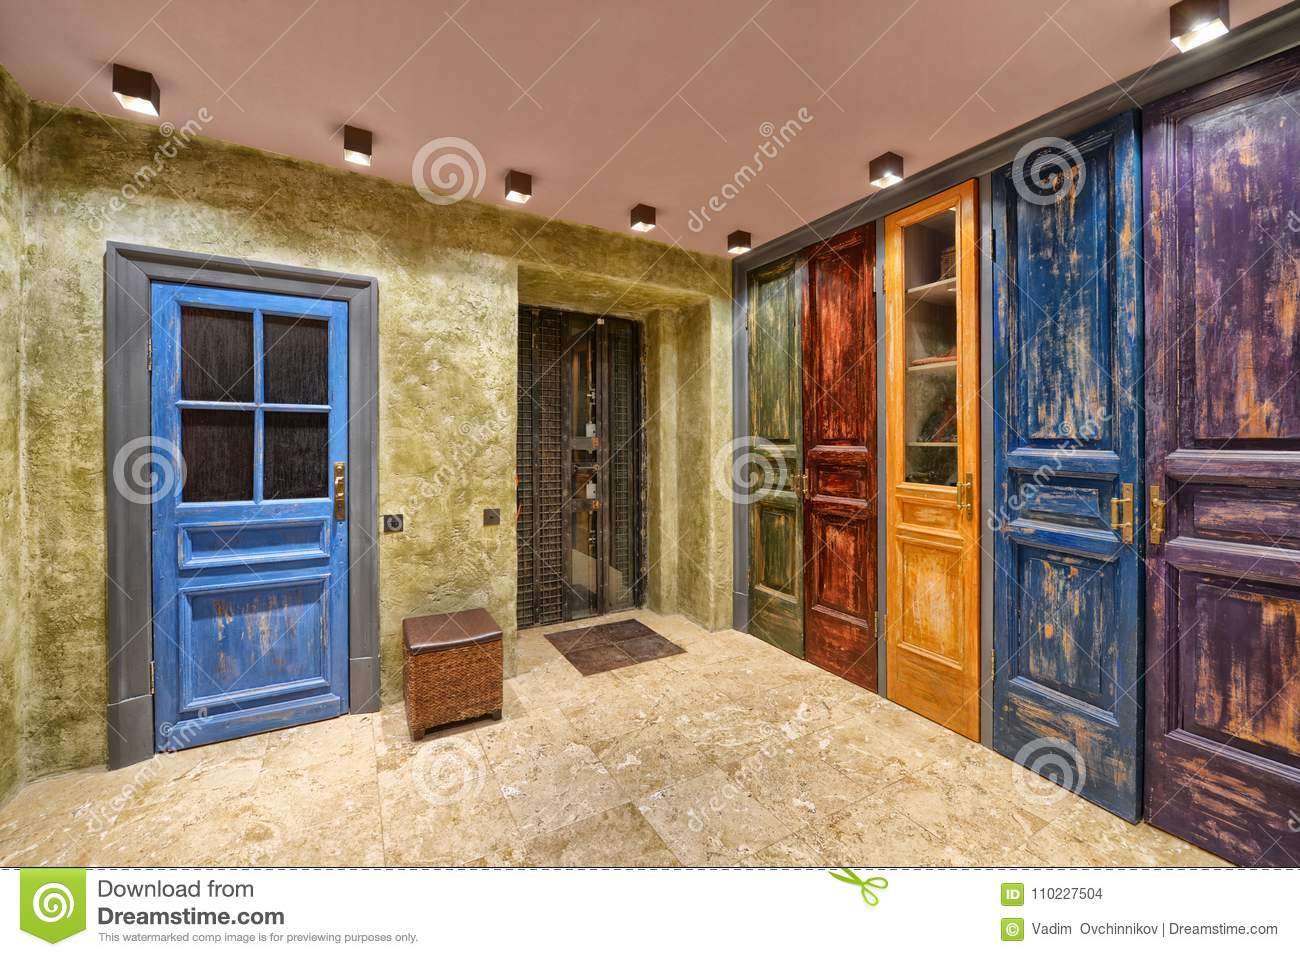 Antique door interior apartment with designer renovation in the style of a loft